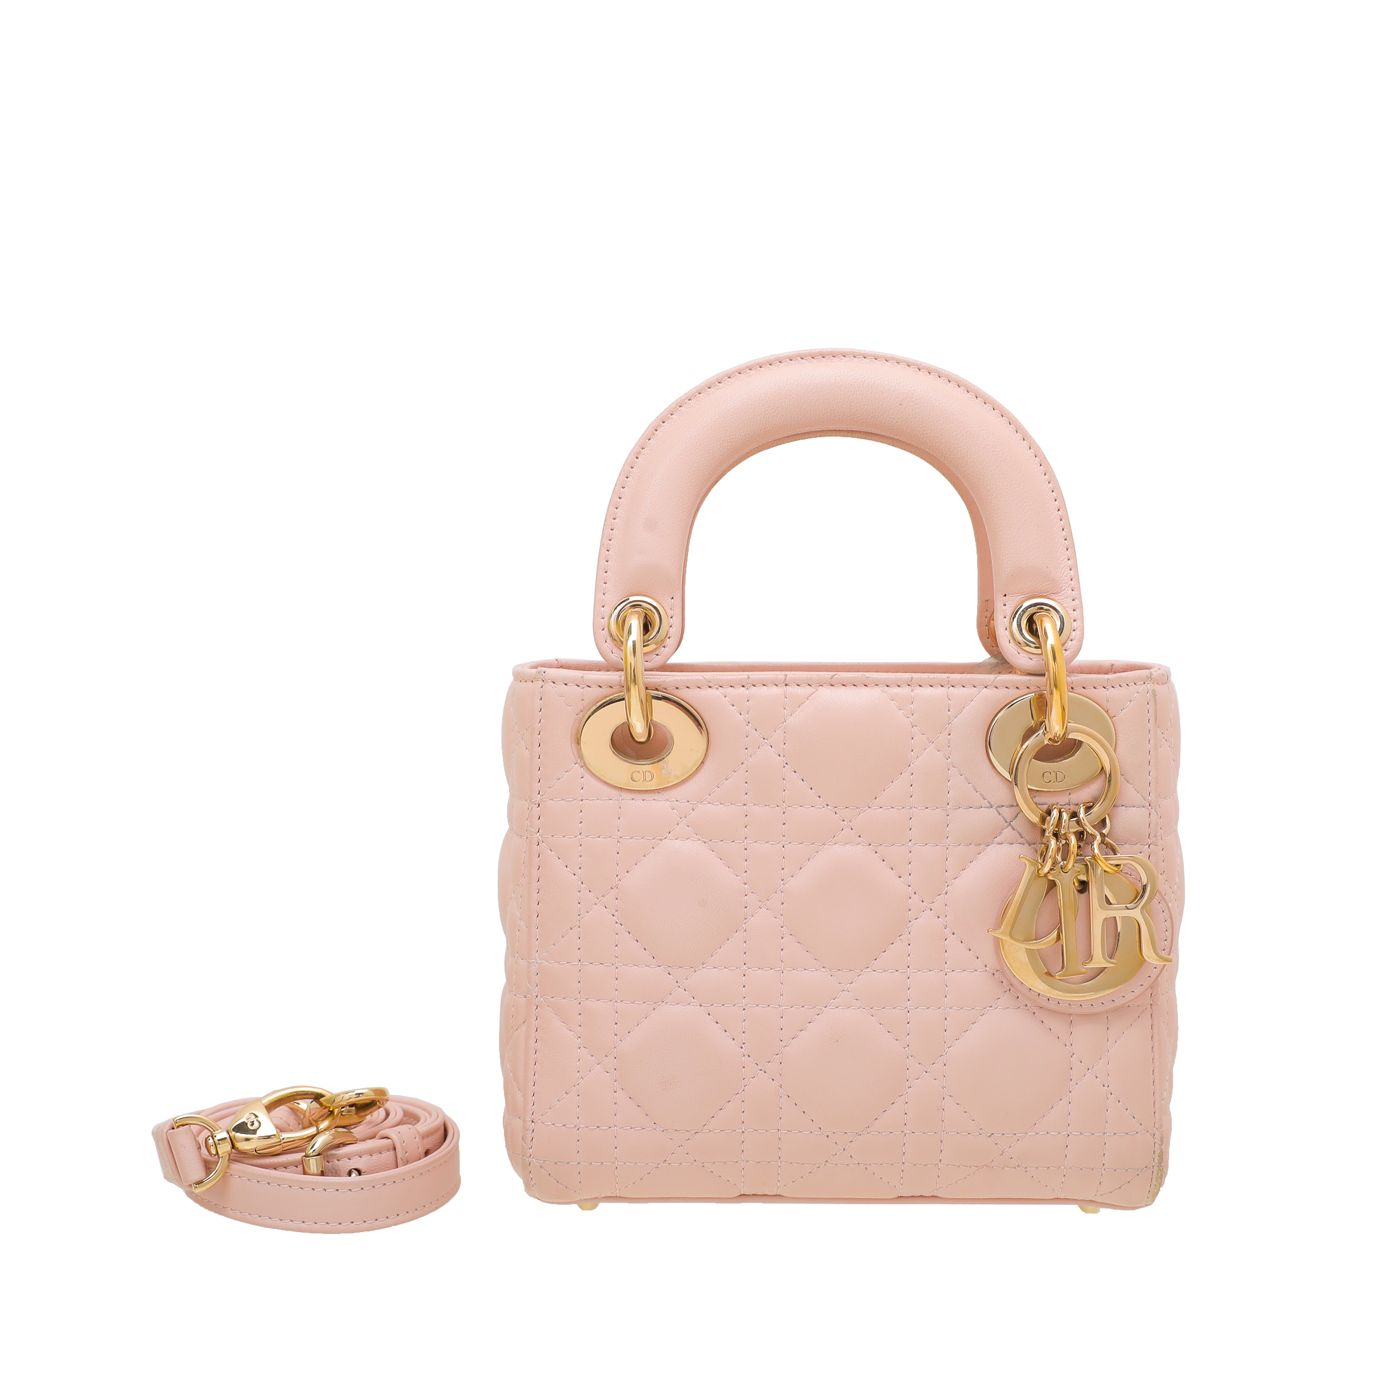 Christian Dior Light Pink Lady Dior Mini Bag